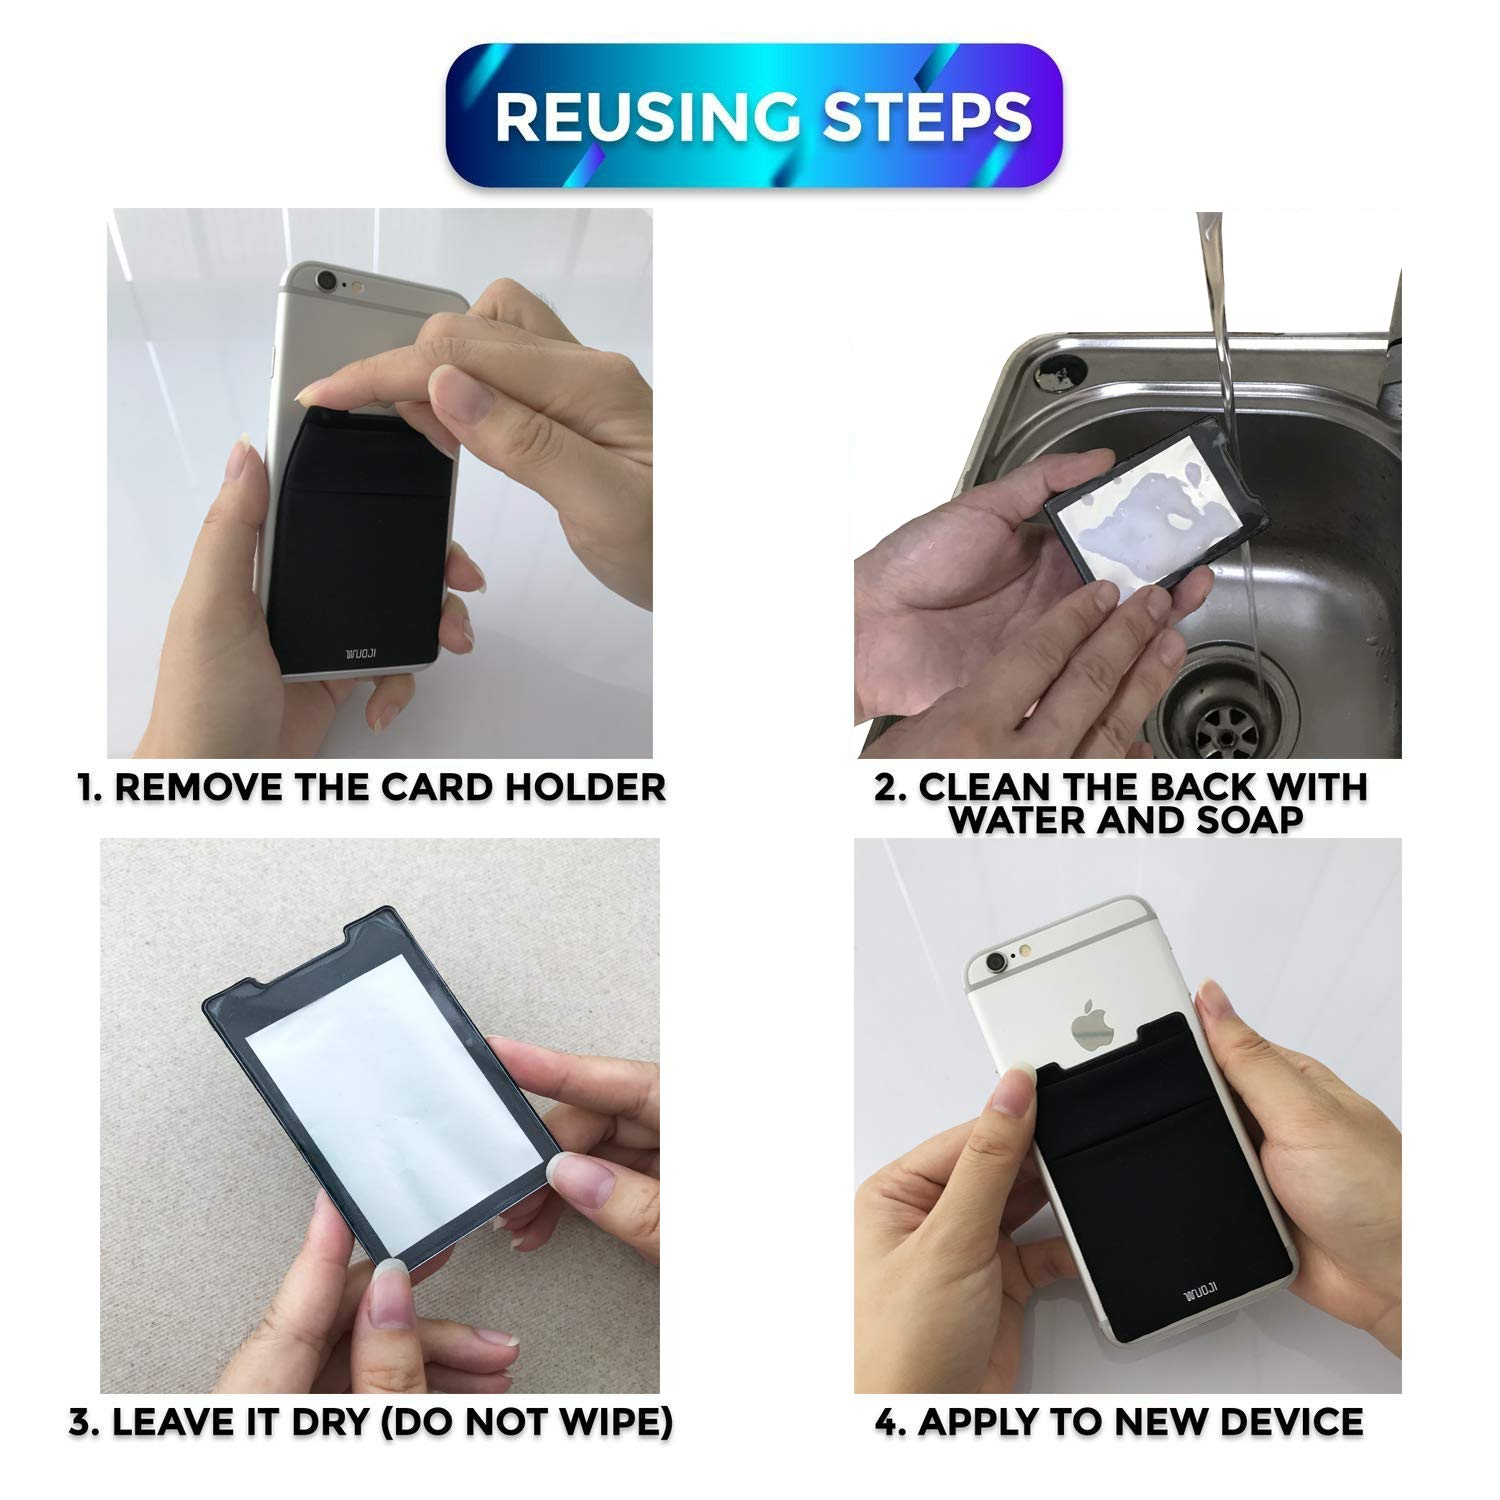 Gray2 Double Secure Pocket 2pc Ultra-Slim Self Adhesive Credit Card Holder Card Sleeves Phone Wallet Sticker for All Smartphones RFID Blocking Phone Card Wallet